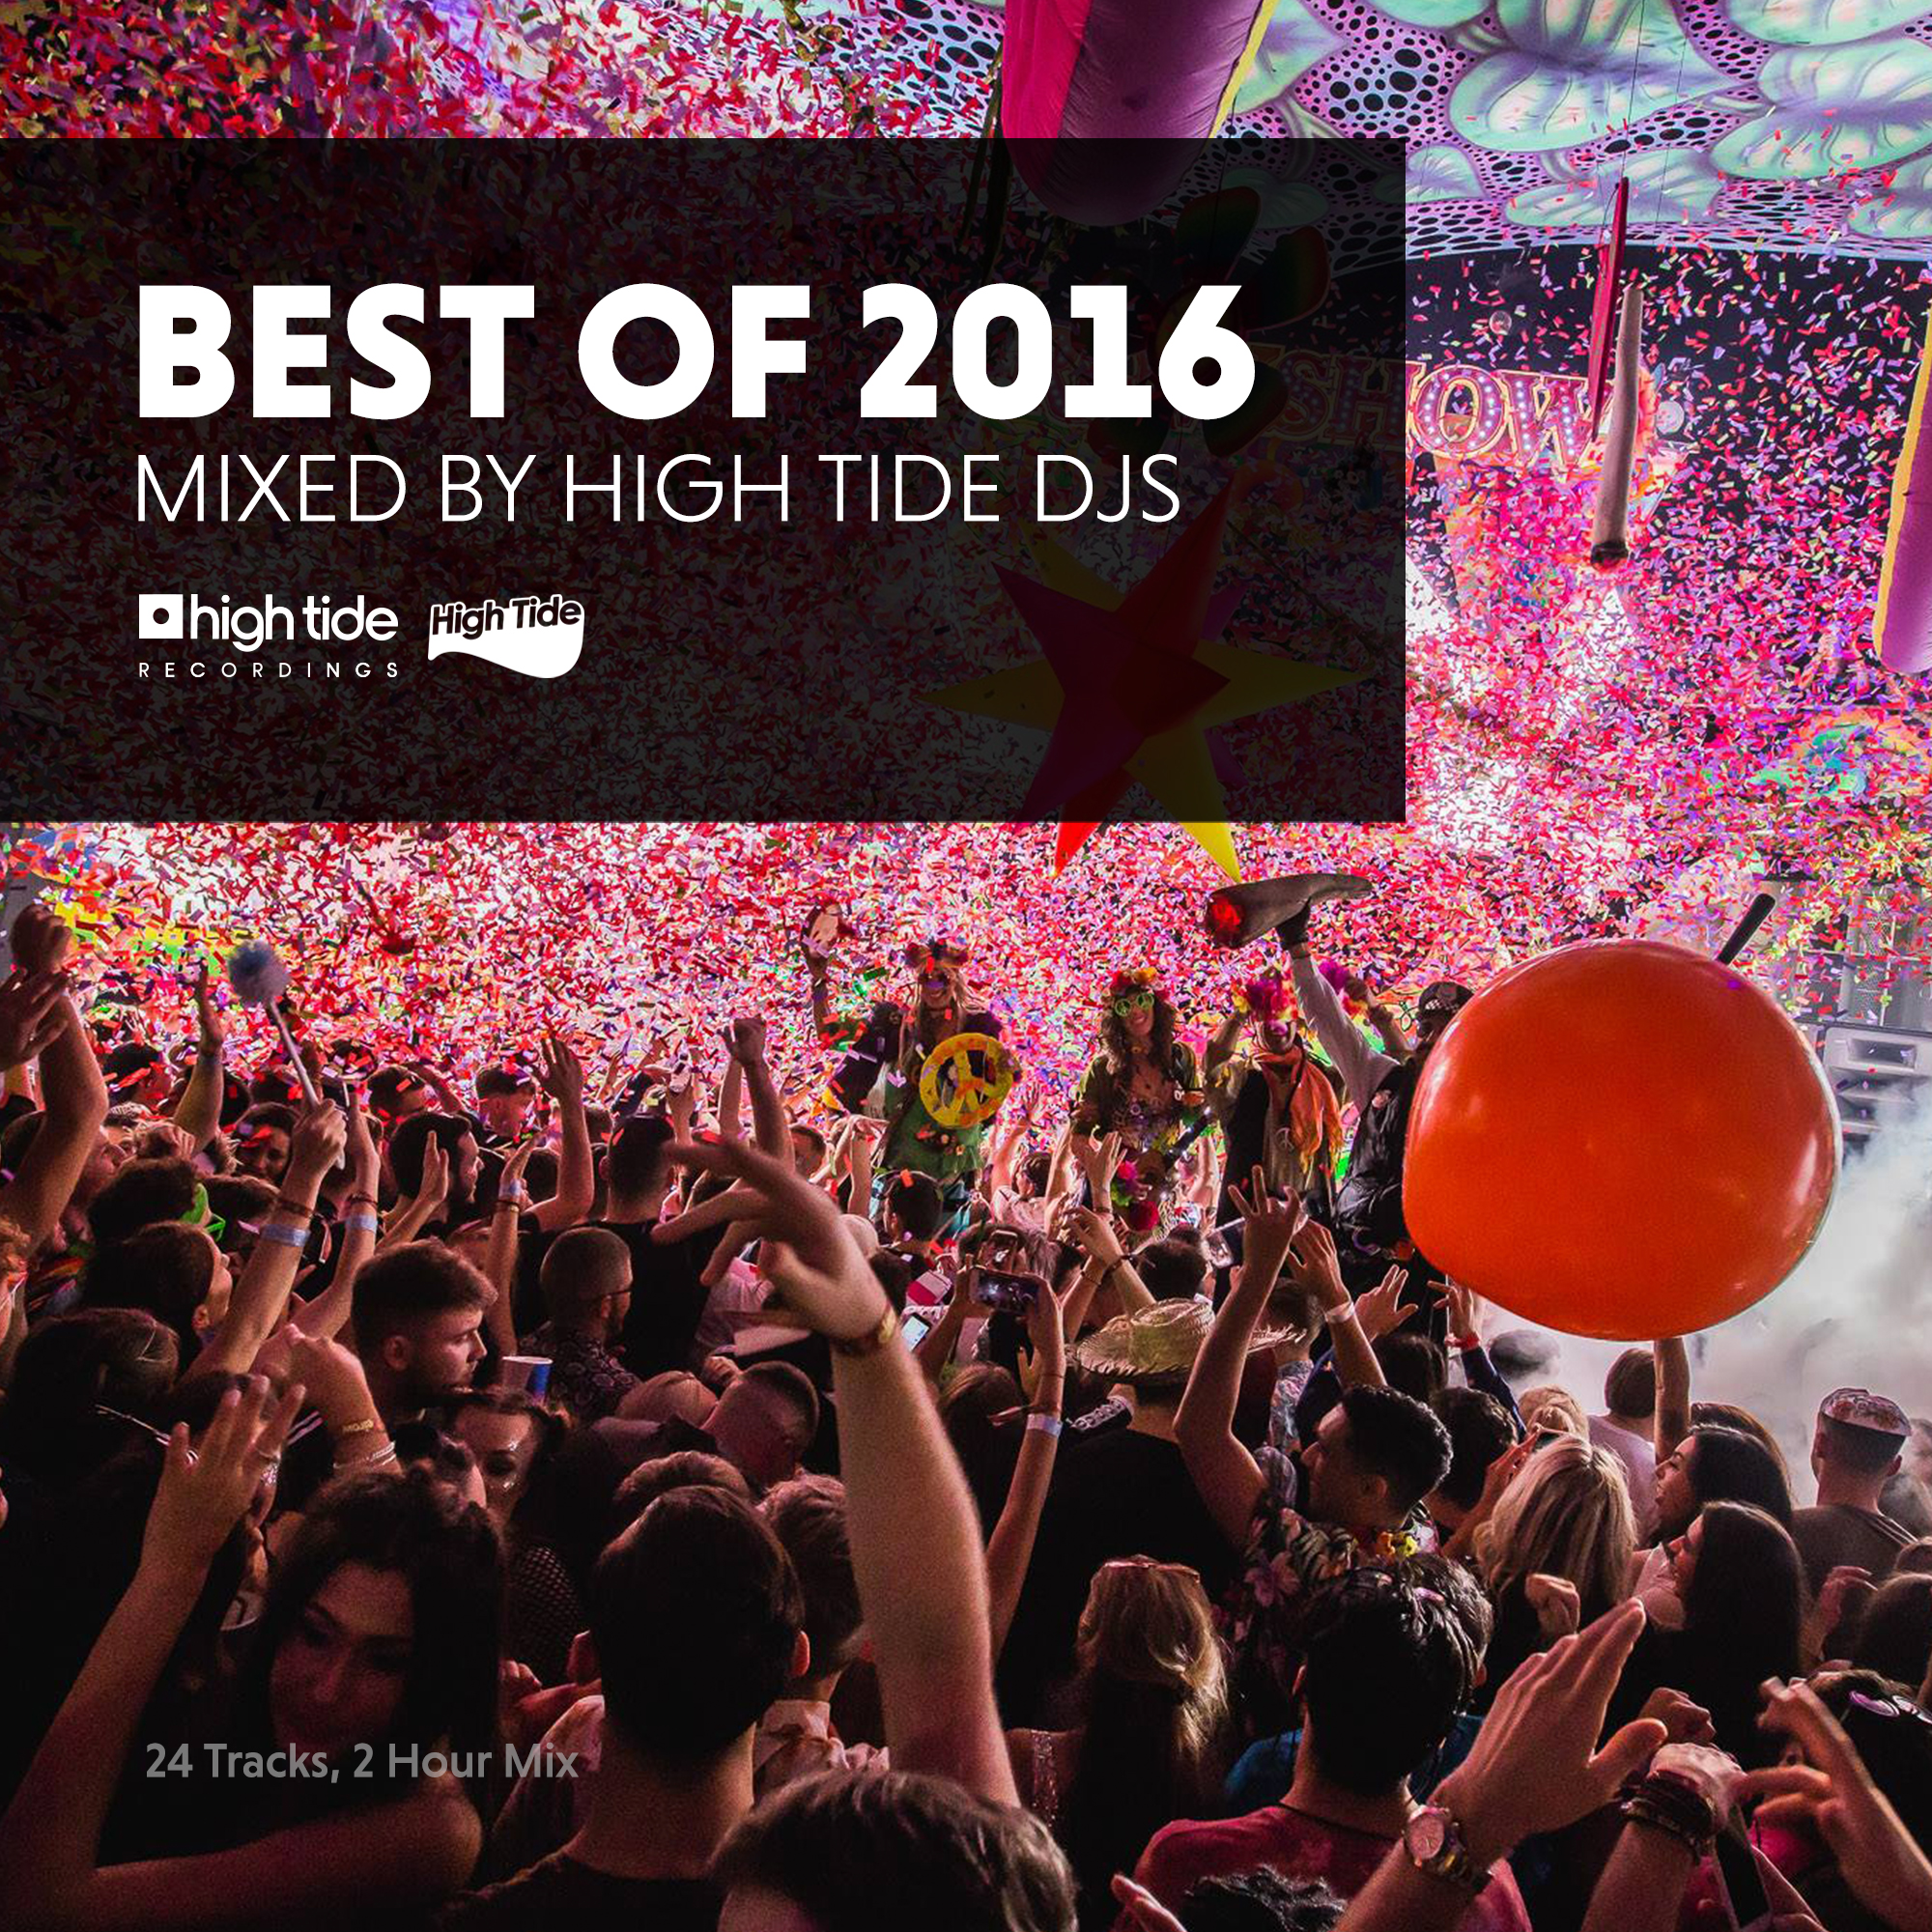 High Tide Best Of 2016 [24 tracks, 2 hour mix]